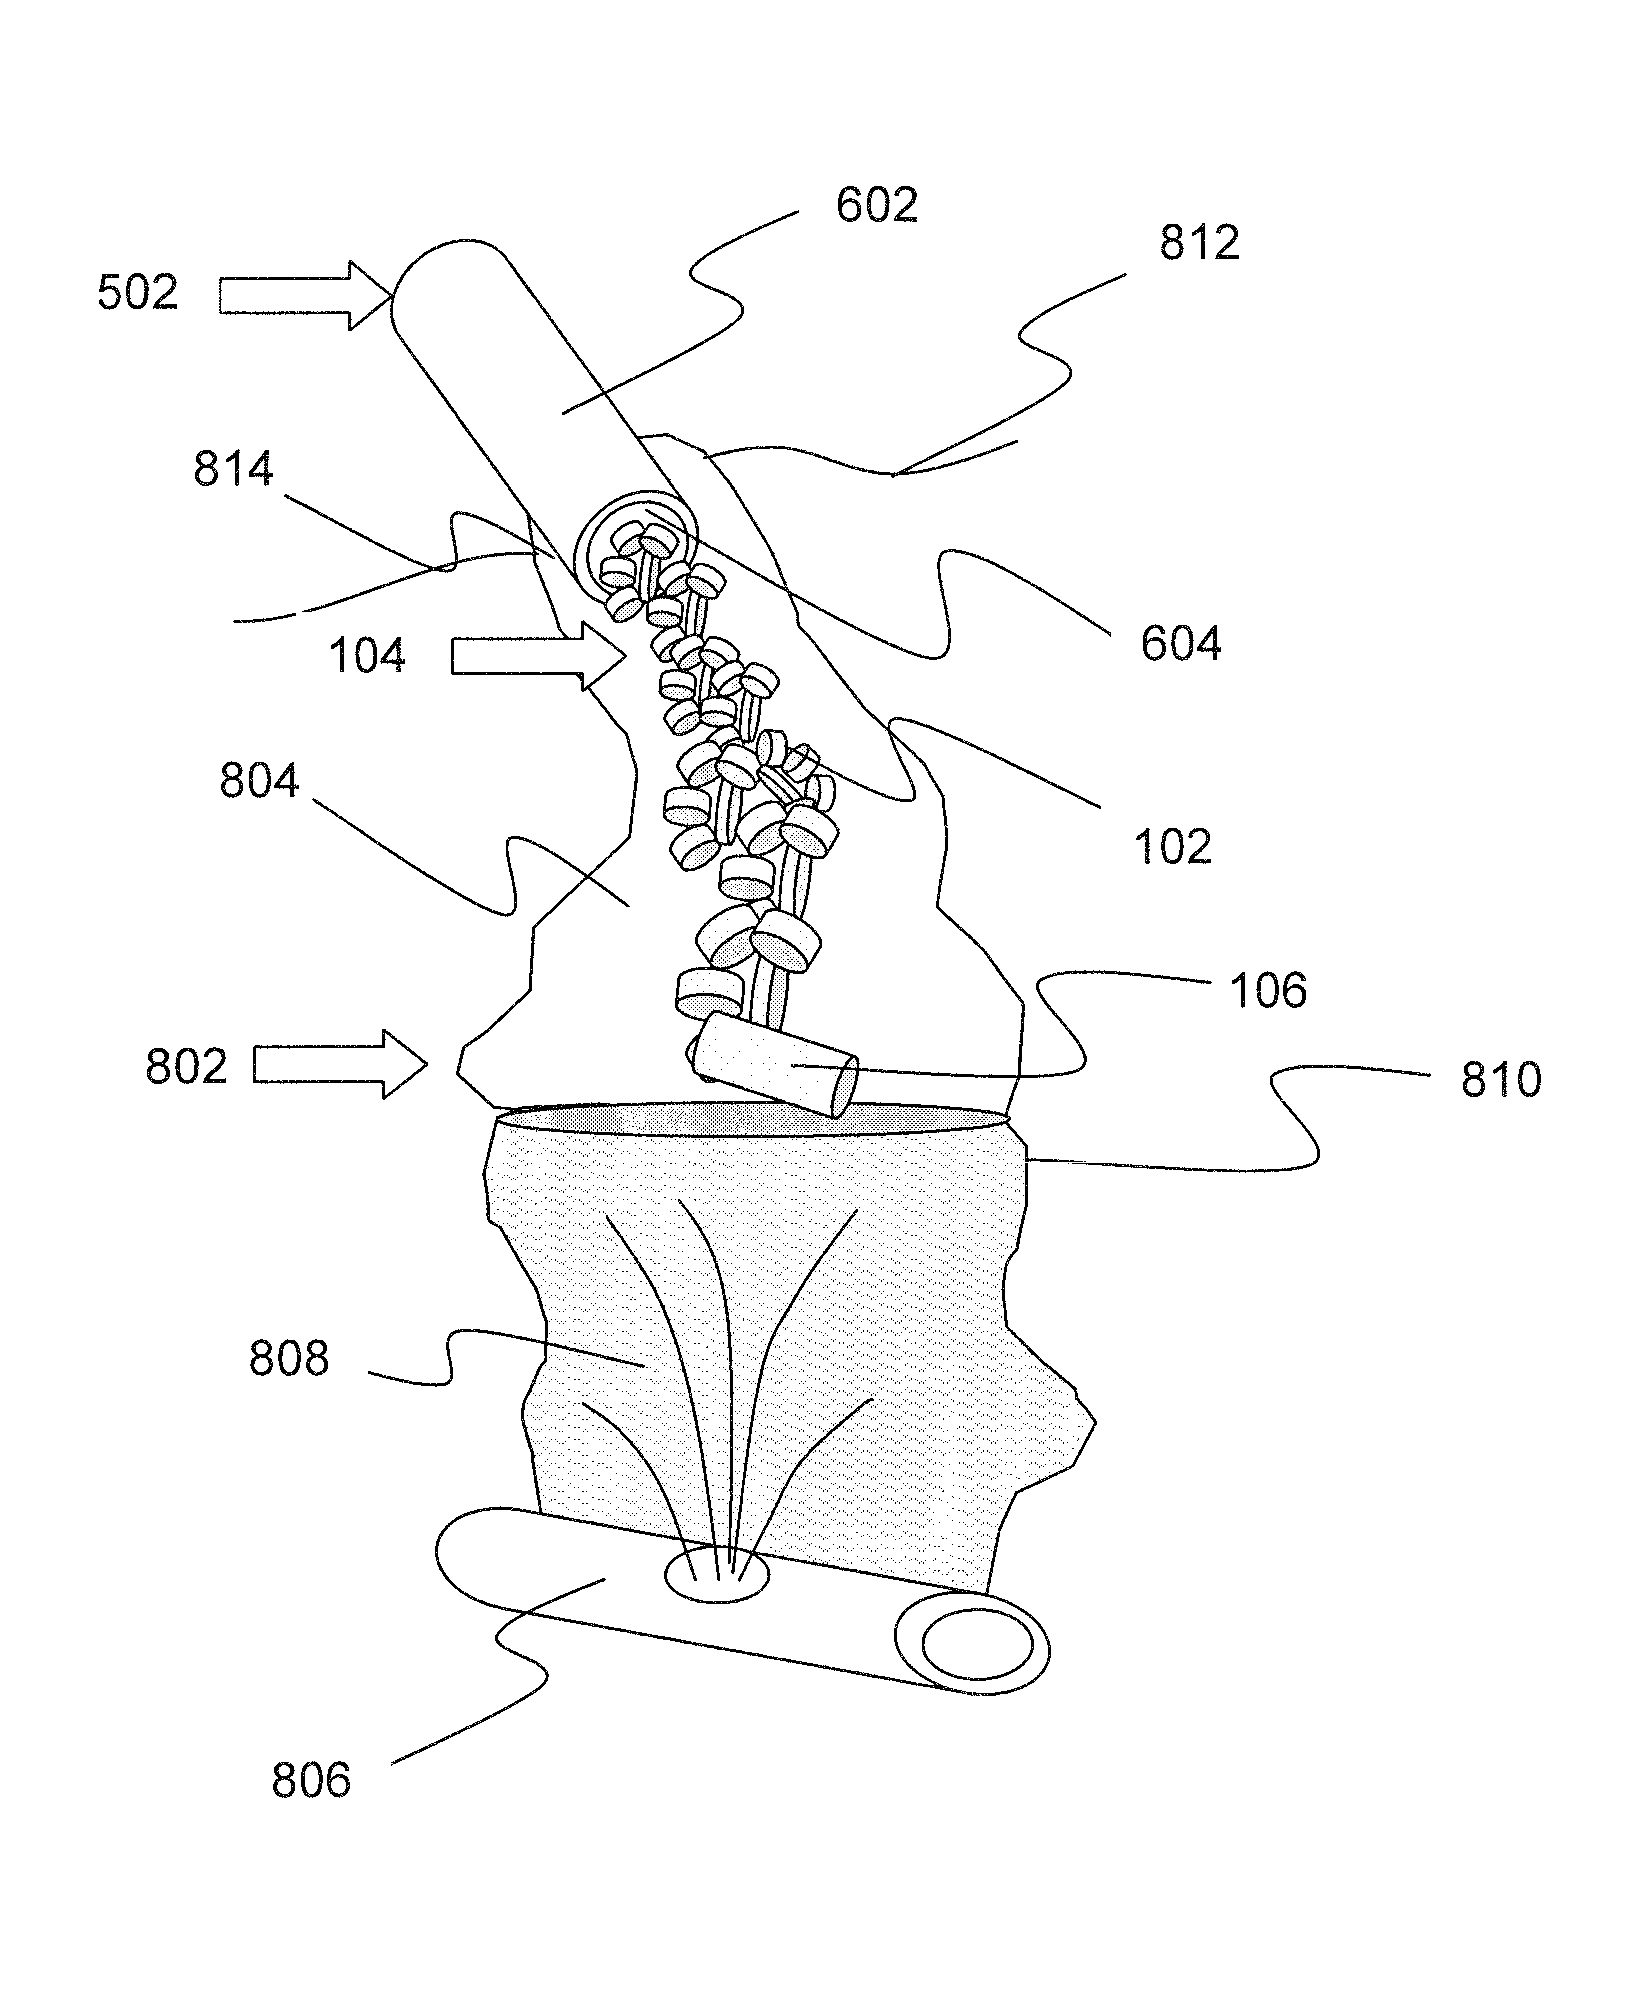 Patent US Hemorrhage control devices and methods Google